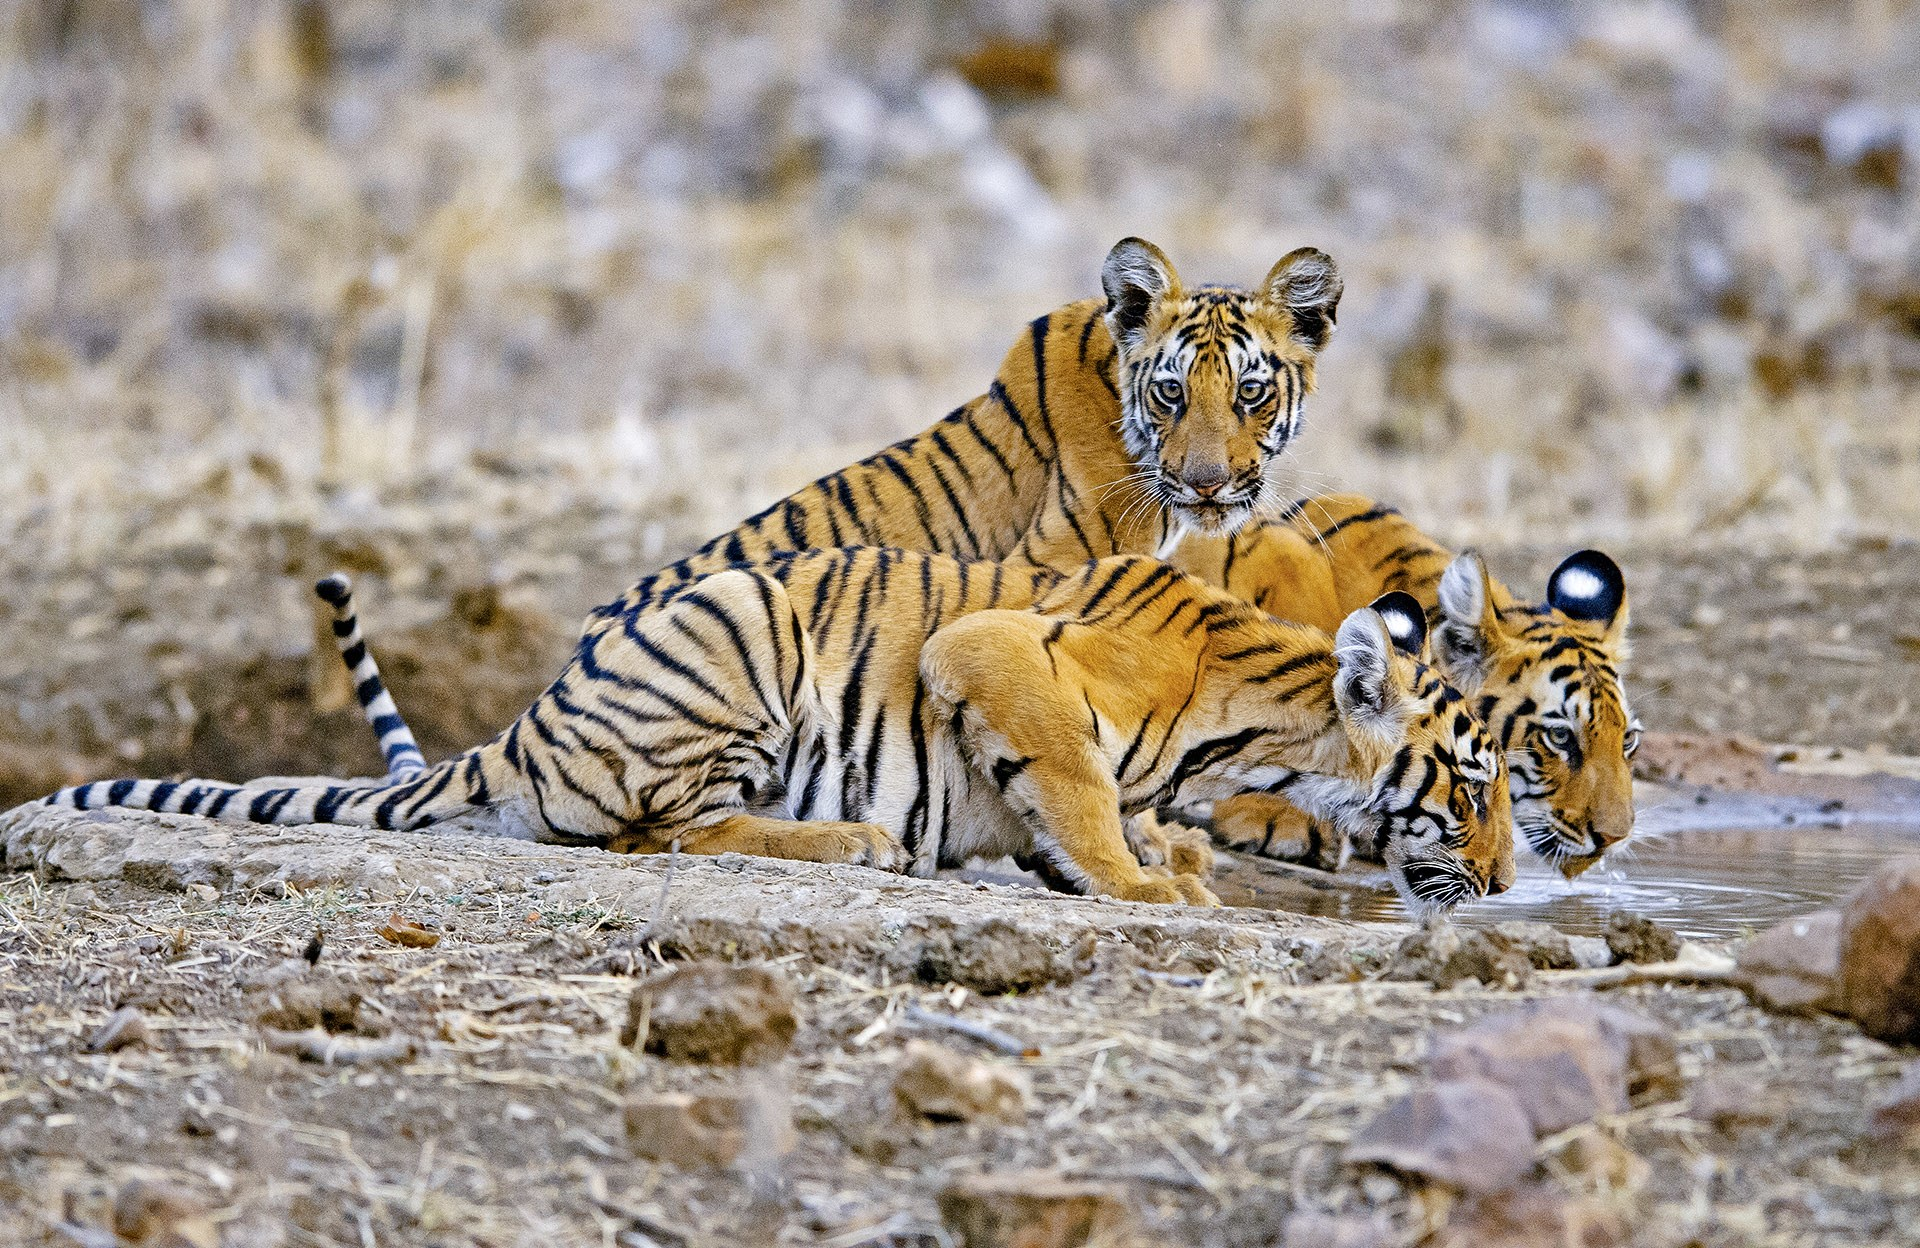 Tadoba National Park is known for its sightings of tiger cubs, the current favourite being the tigress Madhu's photogenic trio.